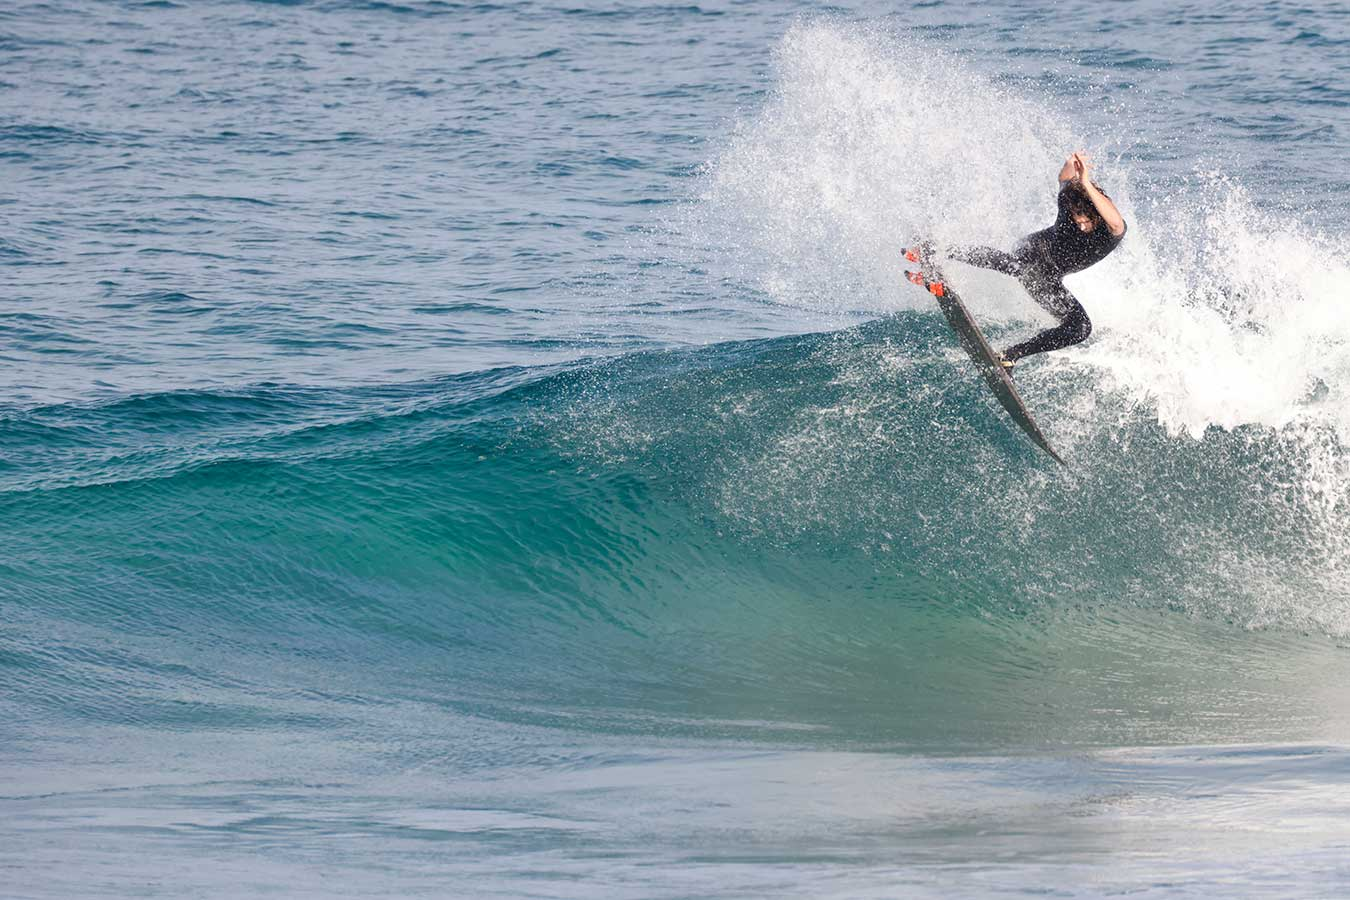 surfer-mid-air-with-overlay-auto-focus-grid-to-demonstrate-full-sensor-af-coverage